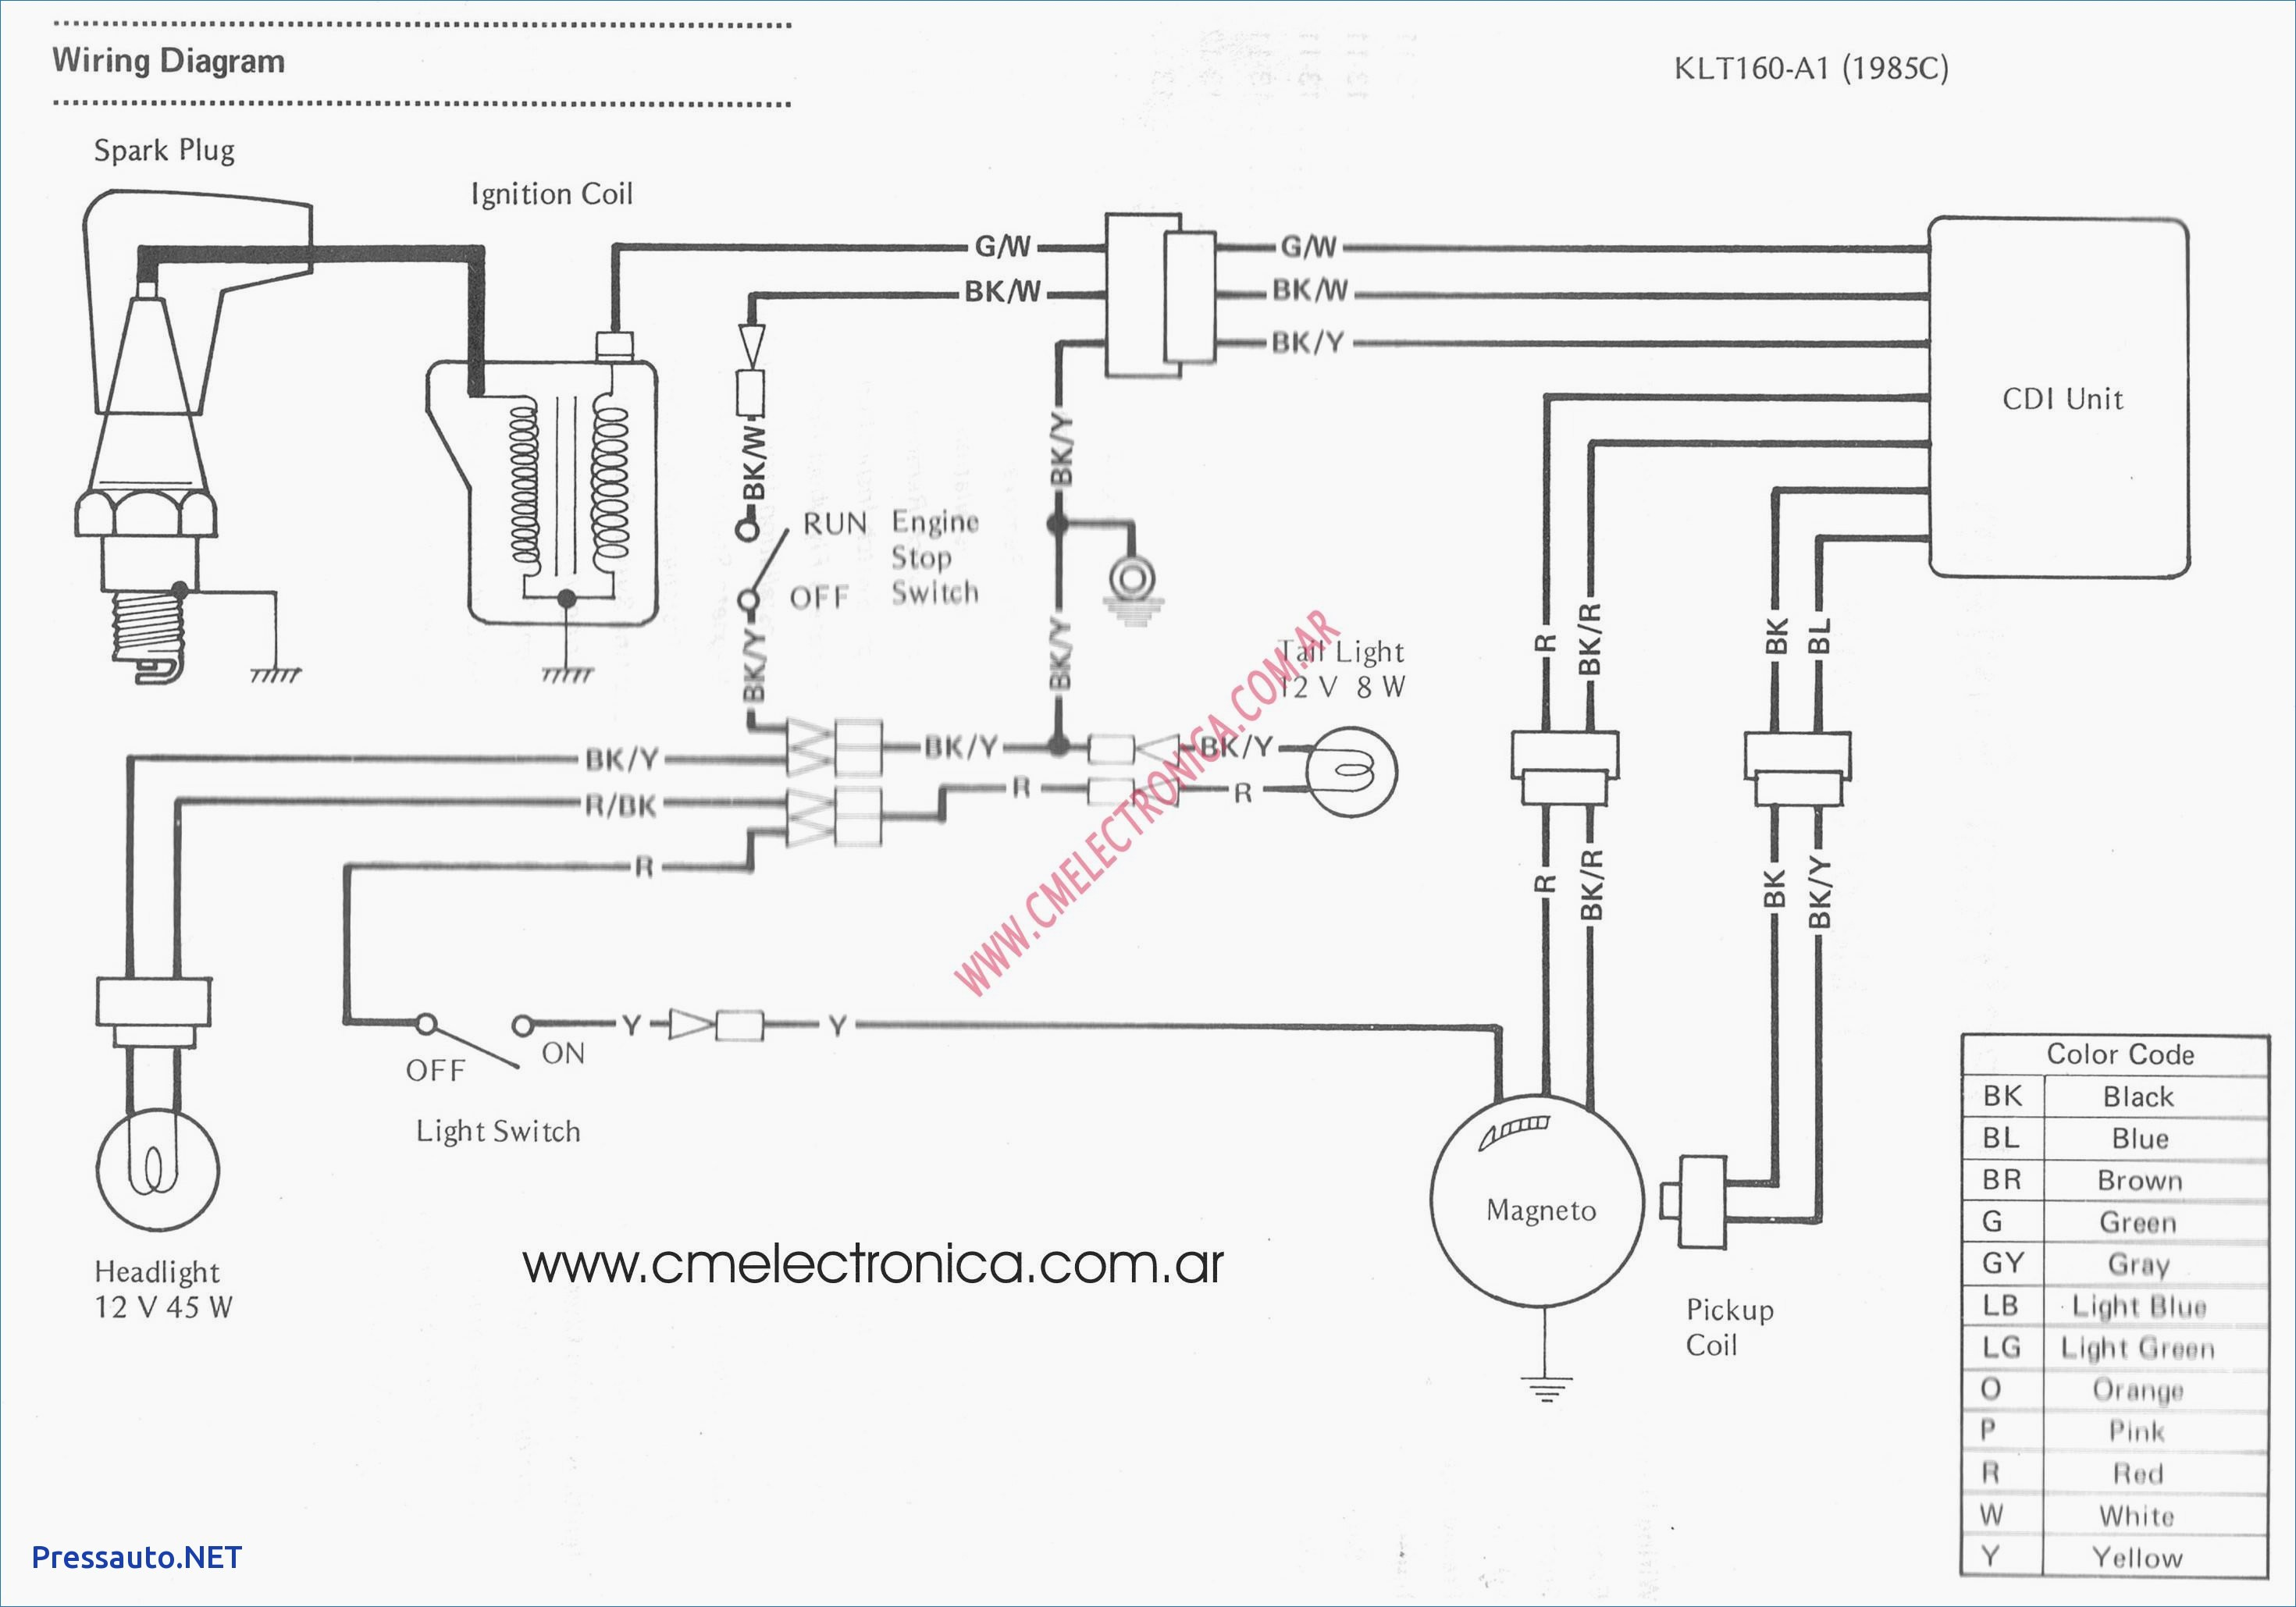 Ih 560 Wiring Diagram - Today Wiring Schematic Diagram Farmall Wiring Harness Diagram on ih tractor wiring diagram, international 454 wiring diagram, farmall h wiring diagram, farmall 656 wiring diagram, farmall 806 wiring diagram, farmall 300 wiring diagram, farmall 706 wiring diagram, farmall super mta wiring diagram, international 444 wiring diagram, john deere 3010 wiring diagram, hitch wiring diagram, electrical wiring diagram, transmission wiring diagram, farmall 450 wiring diagram, farmall m wiring diagram, pto wiring diagram, farmall 140 wiring diagram, farmall super a wiring diagram, farmall 460 wiring diagram, farmall 12 volt wiring diagram,